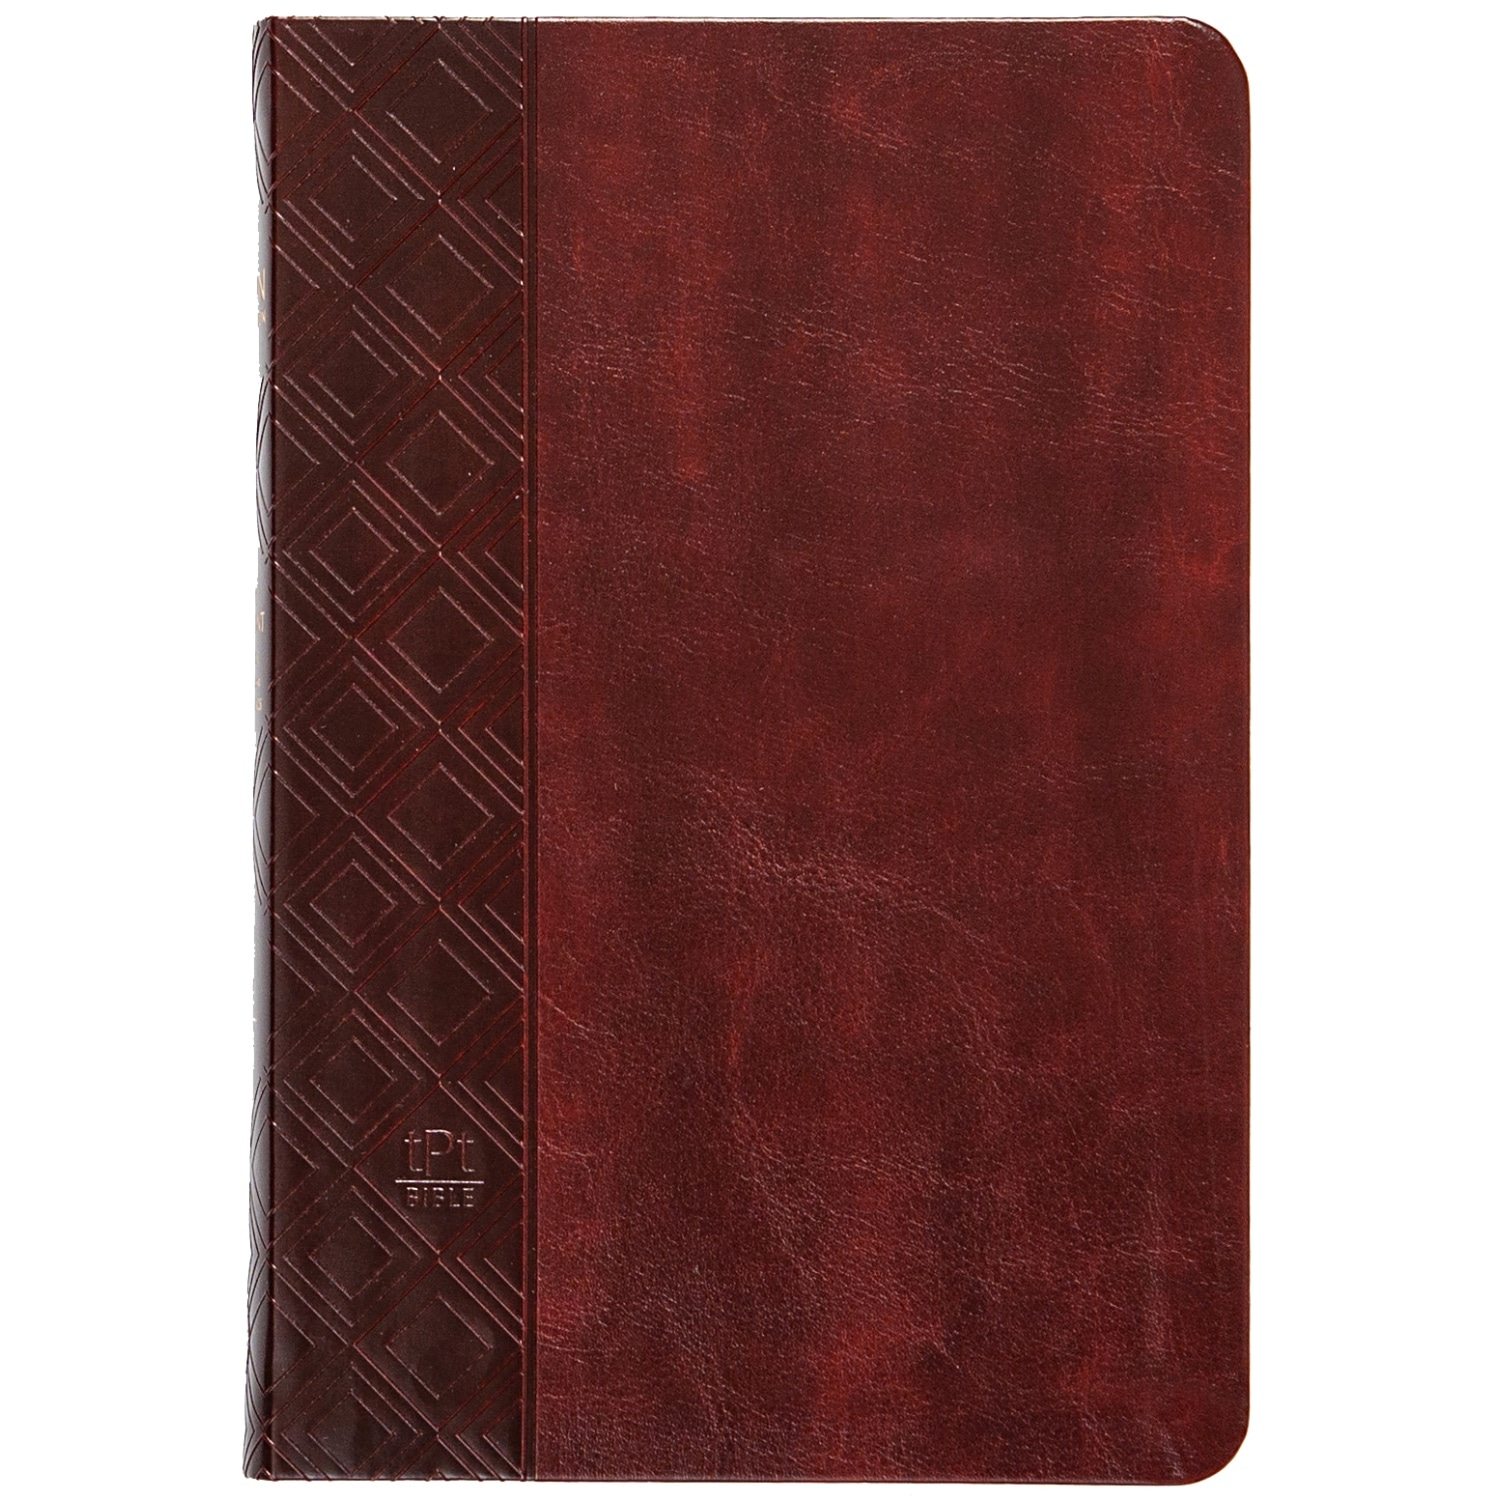 TPT Bible leather cover